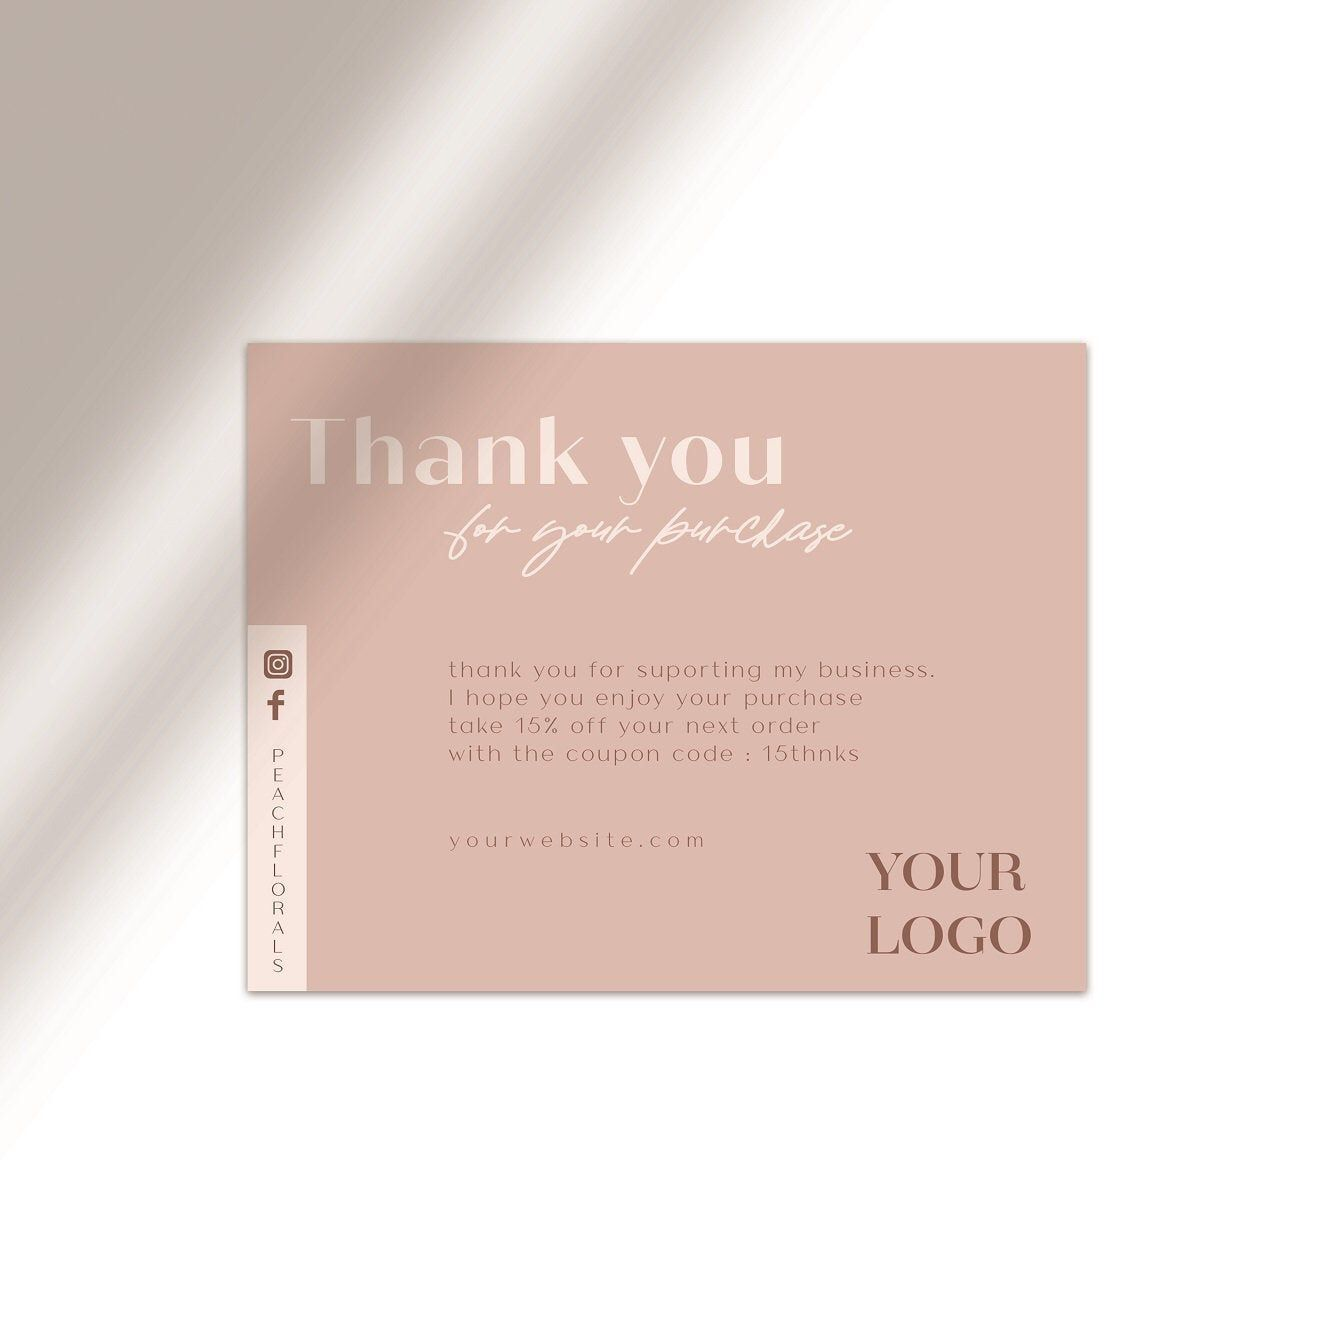 Thank You Thank You Card Business Thank You Card Template Etsy Businessthankyoucards Small Business Cards Packaging Ideas Business Thank You Card Template